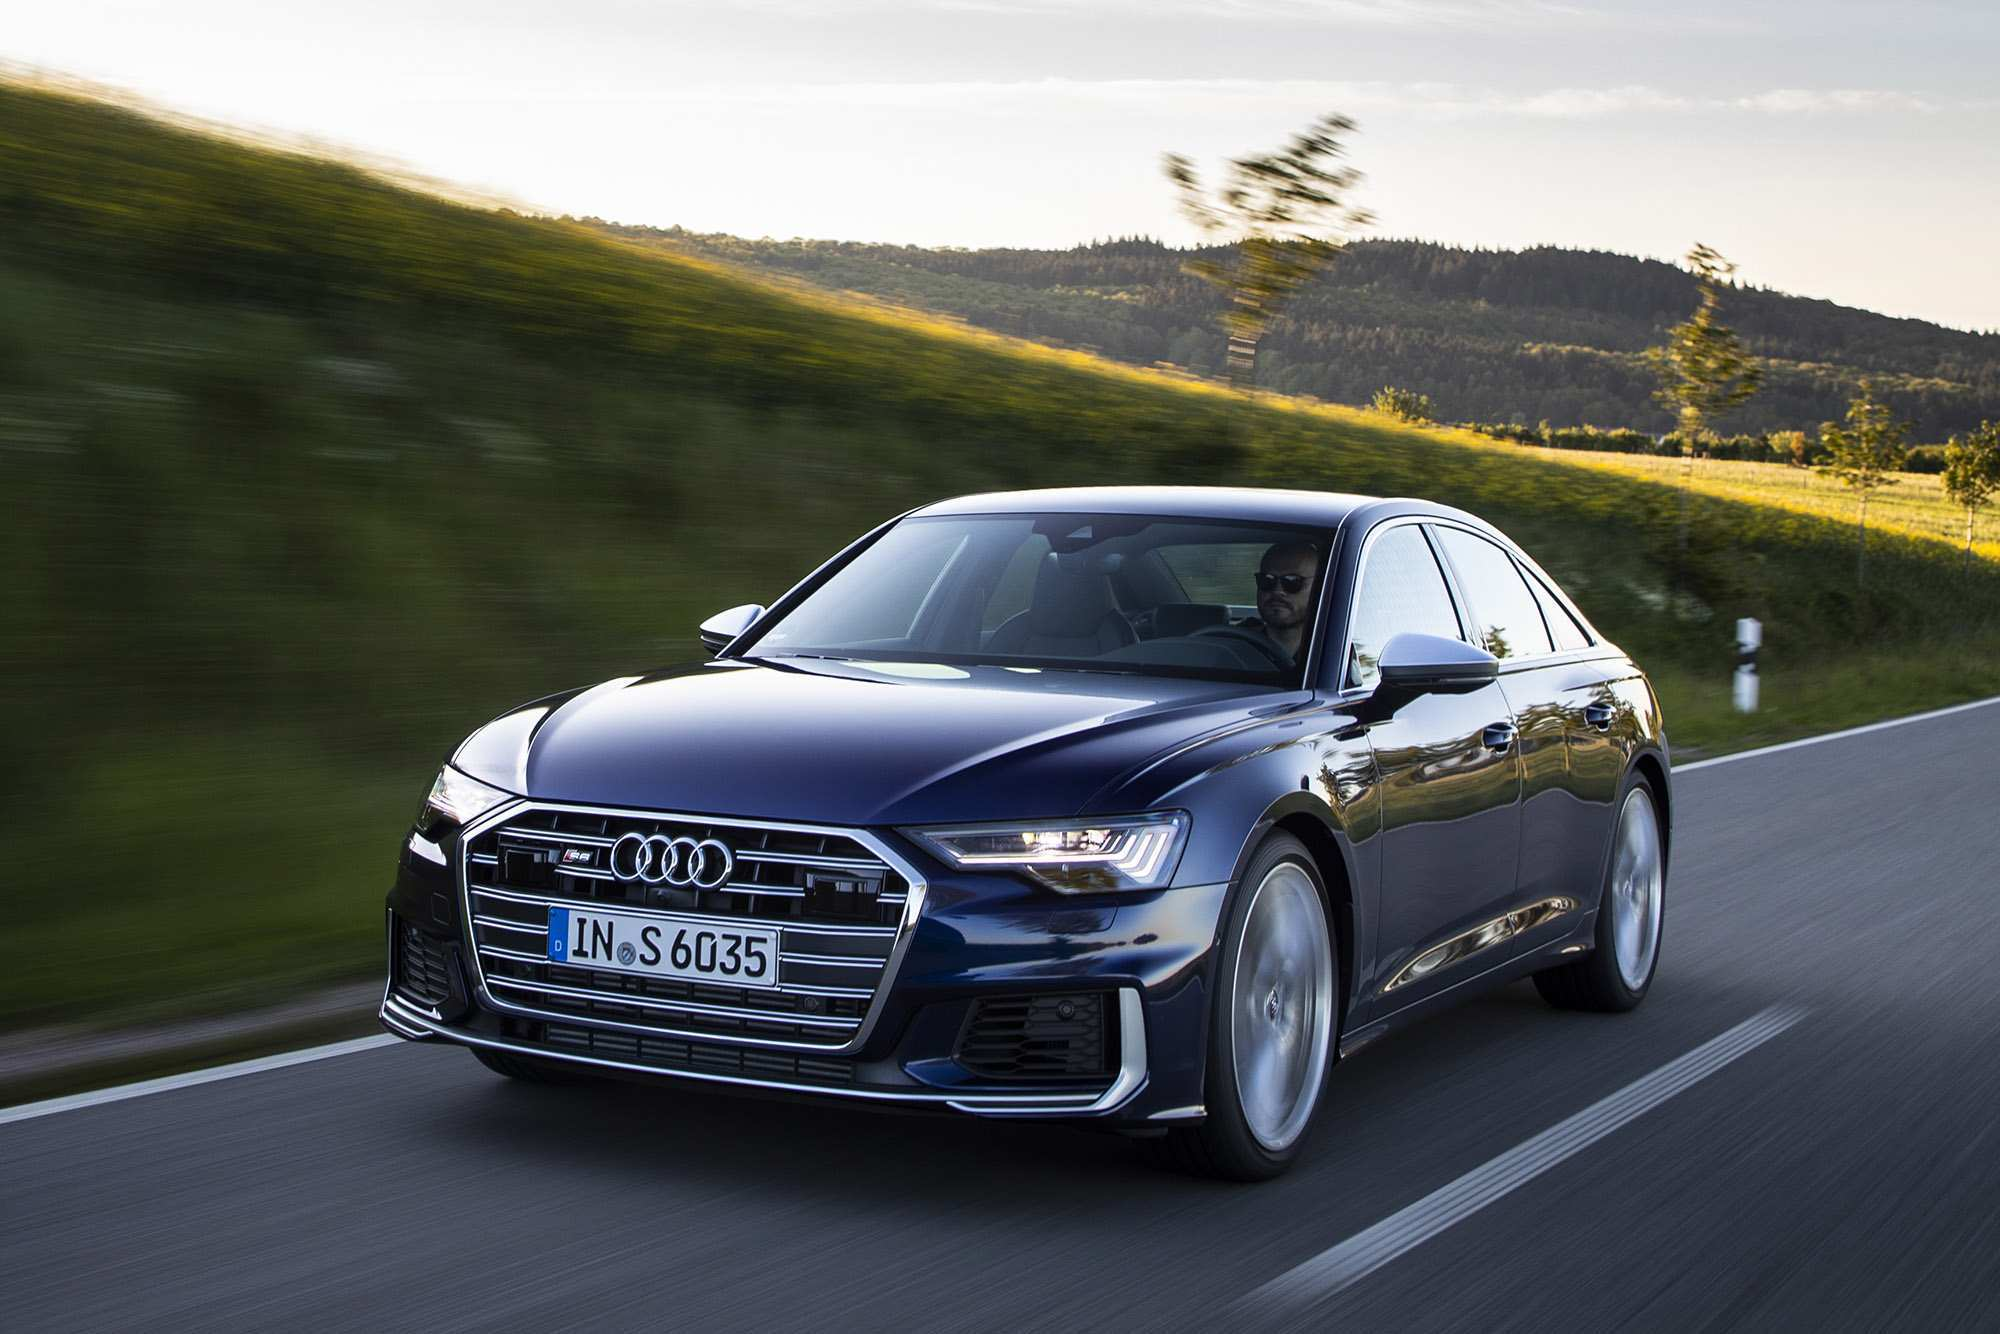 82 All New Audi A6 2020 Release Date And Concept